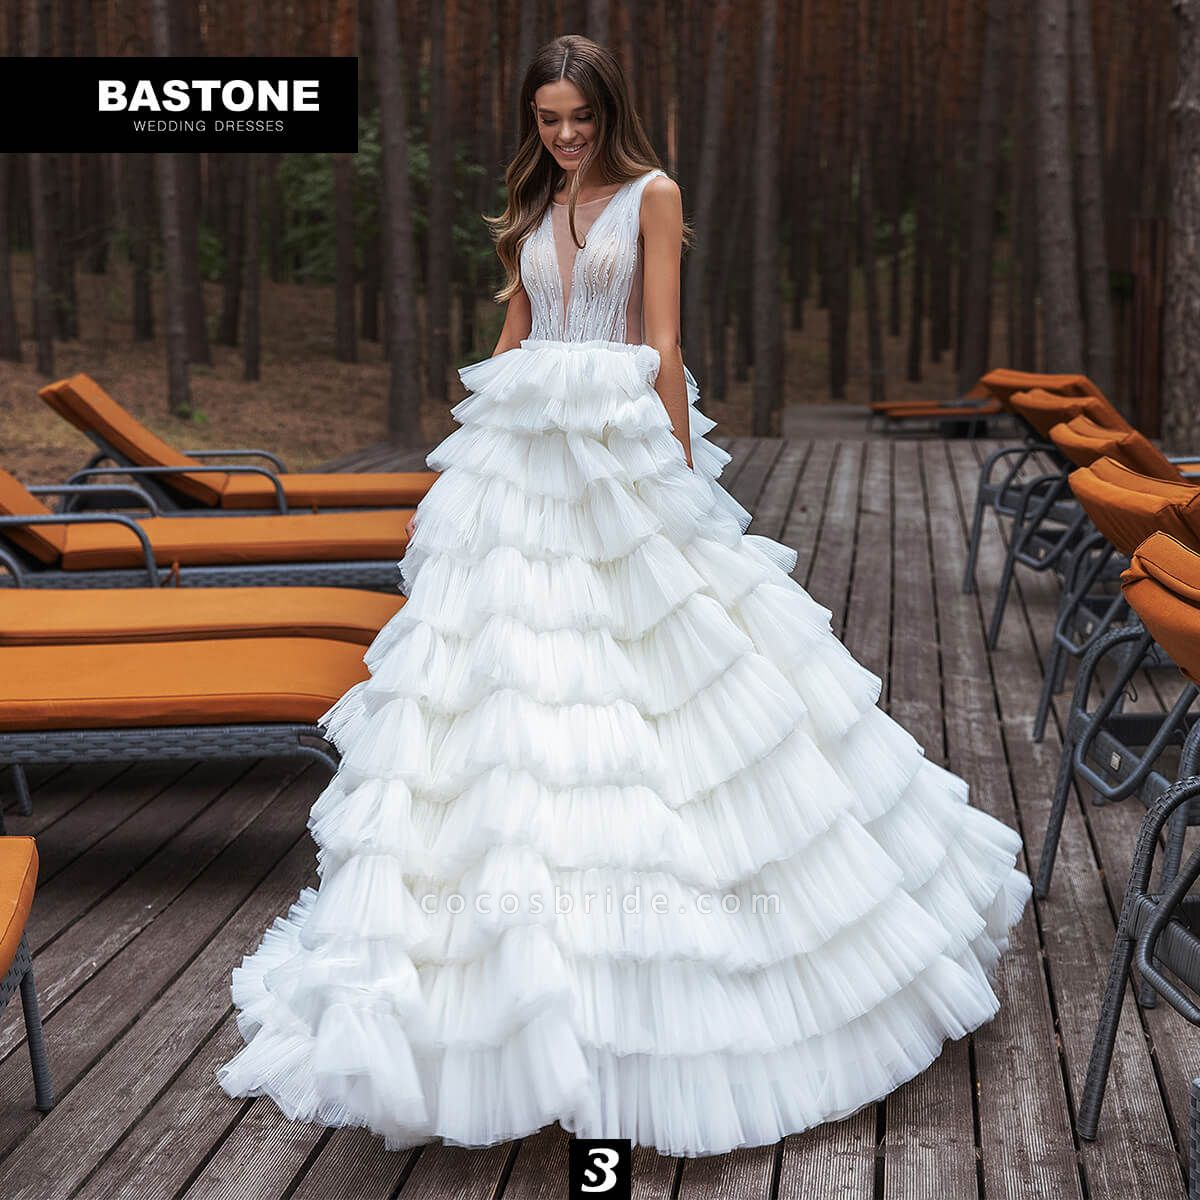 CN263L Wedding Dresses A Line Ball Gown NEW 2021 Collection